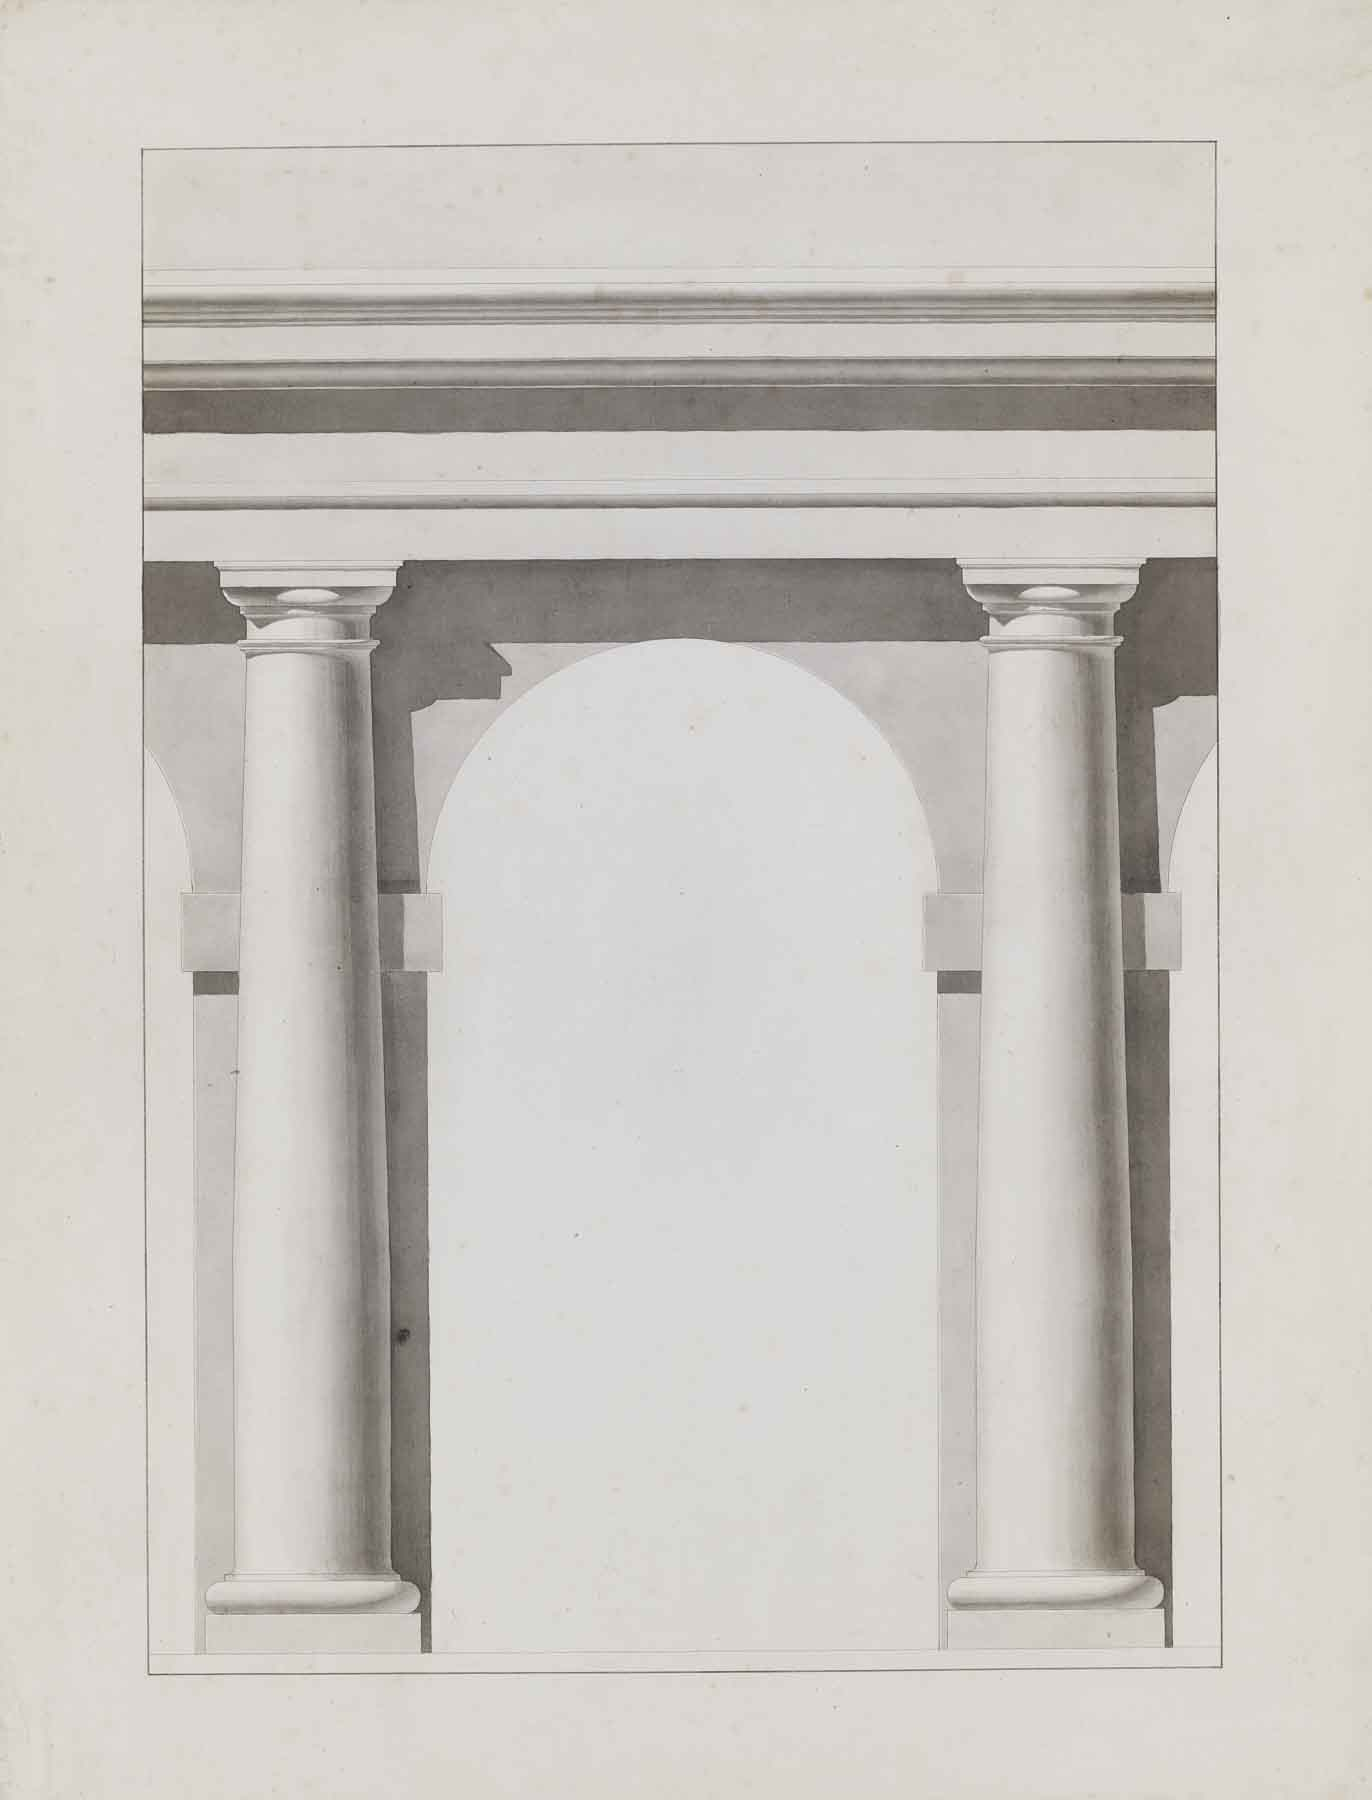 """Théodore Olivier (French, 1821-1899),  Study of Columns,  c. 1840, ink and lavis (wash) on paper, 31 1/2 x 25 1/2"""" framed"""